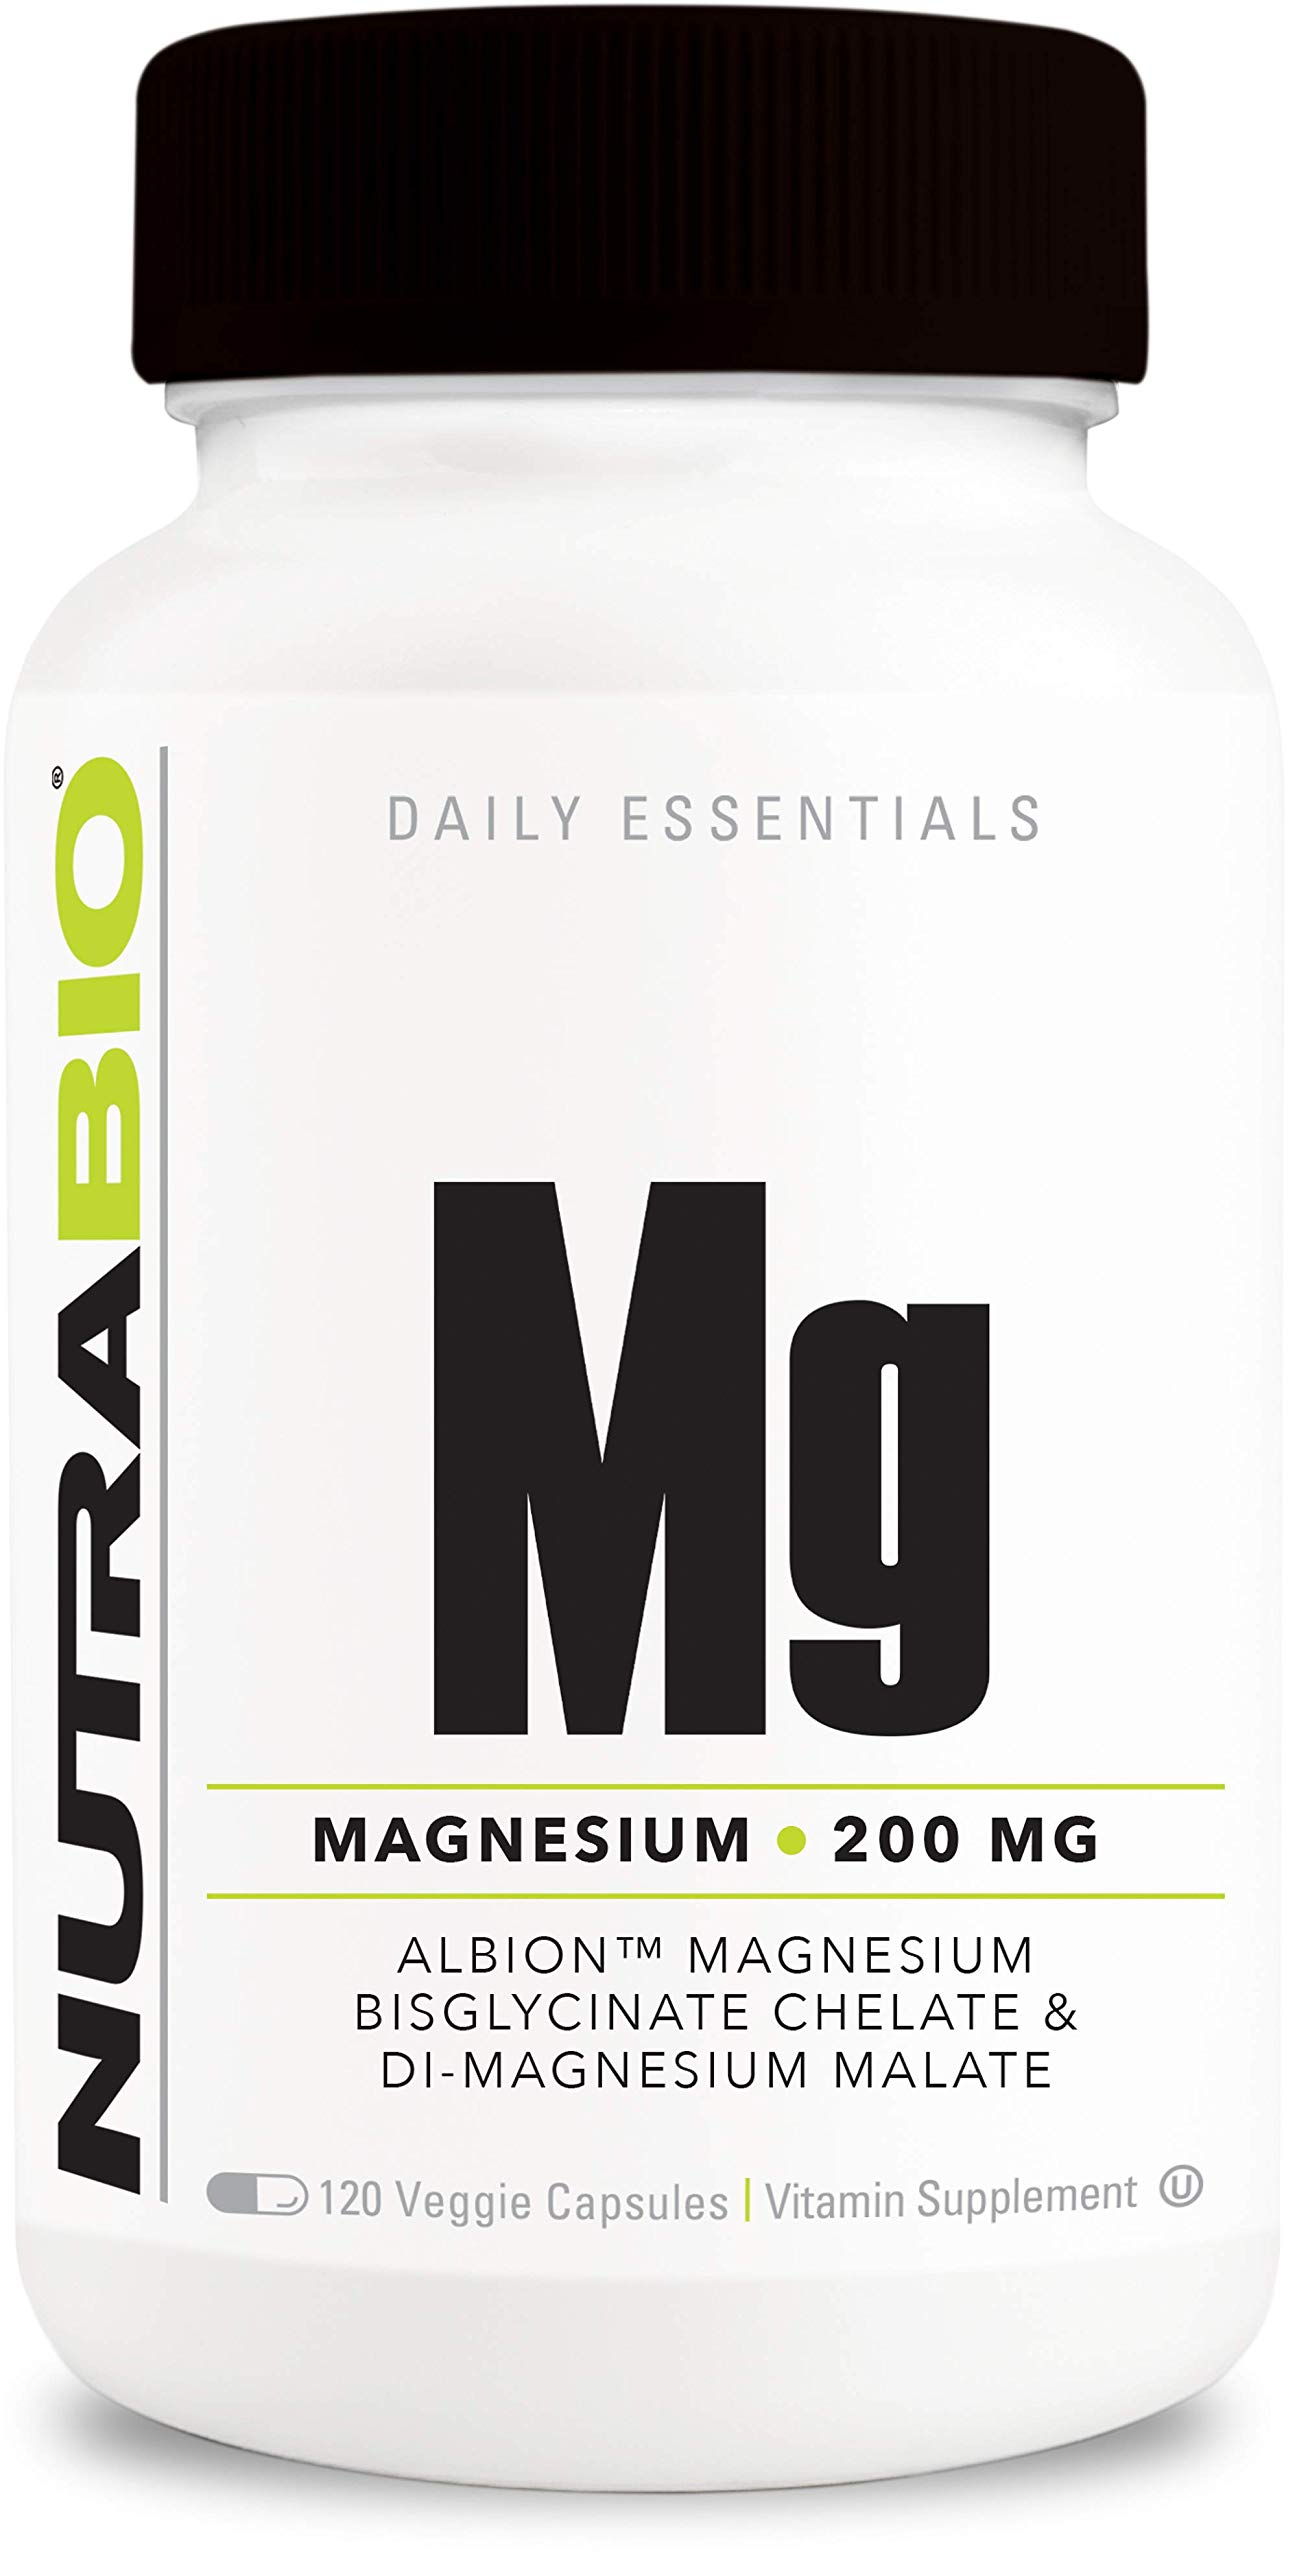 NutraBio Reacted Magnesium Supplement (120 Vegetable Capsules, 200mg per Serving)